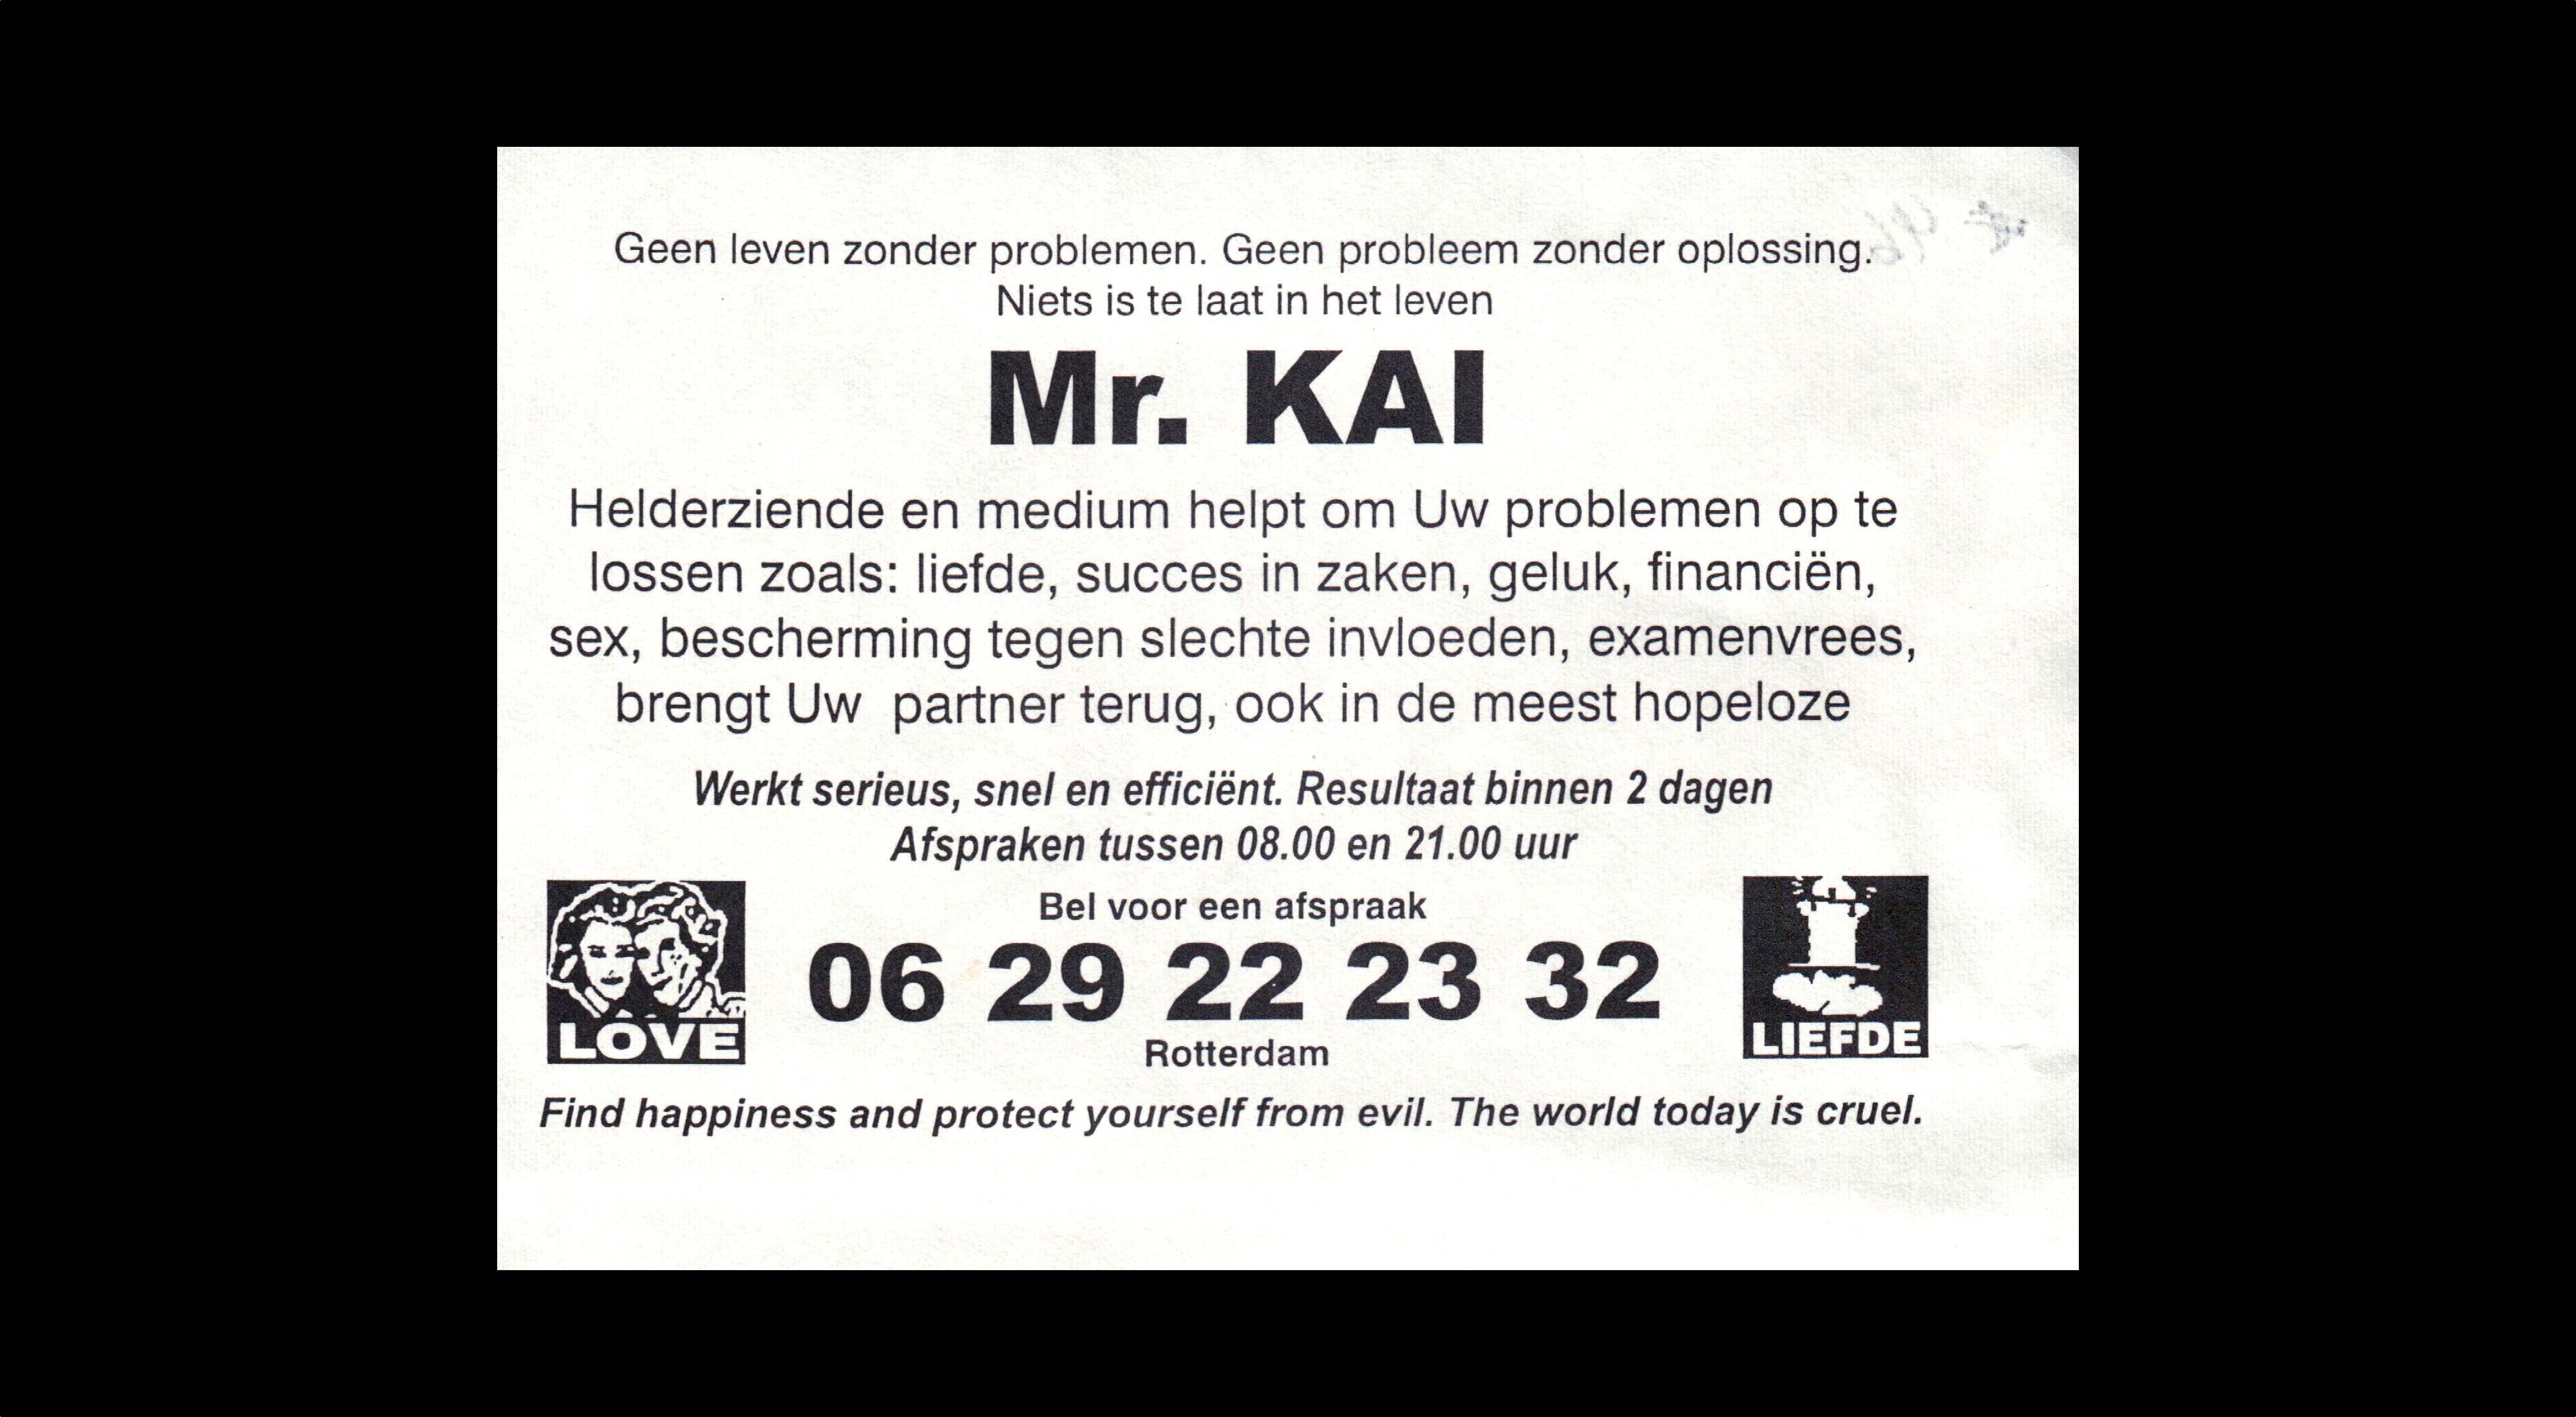 card of Mr. KAI